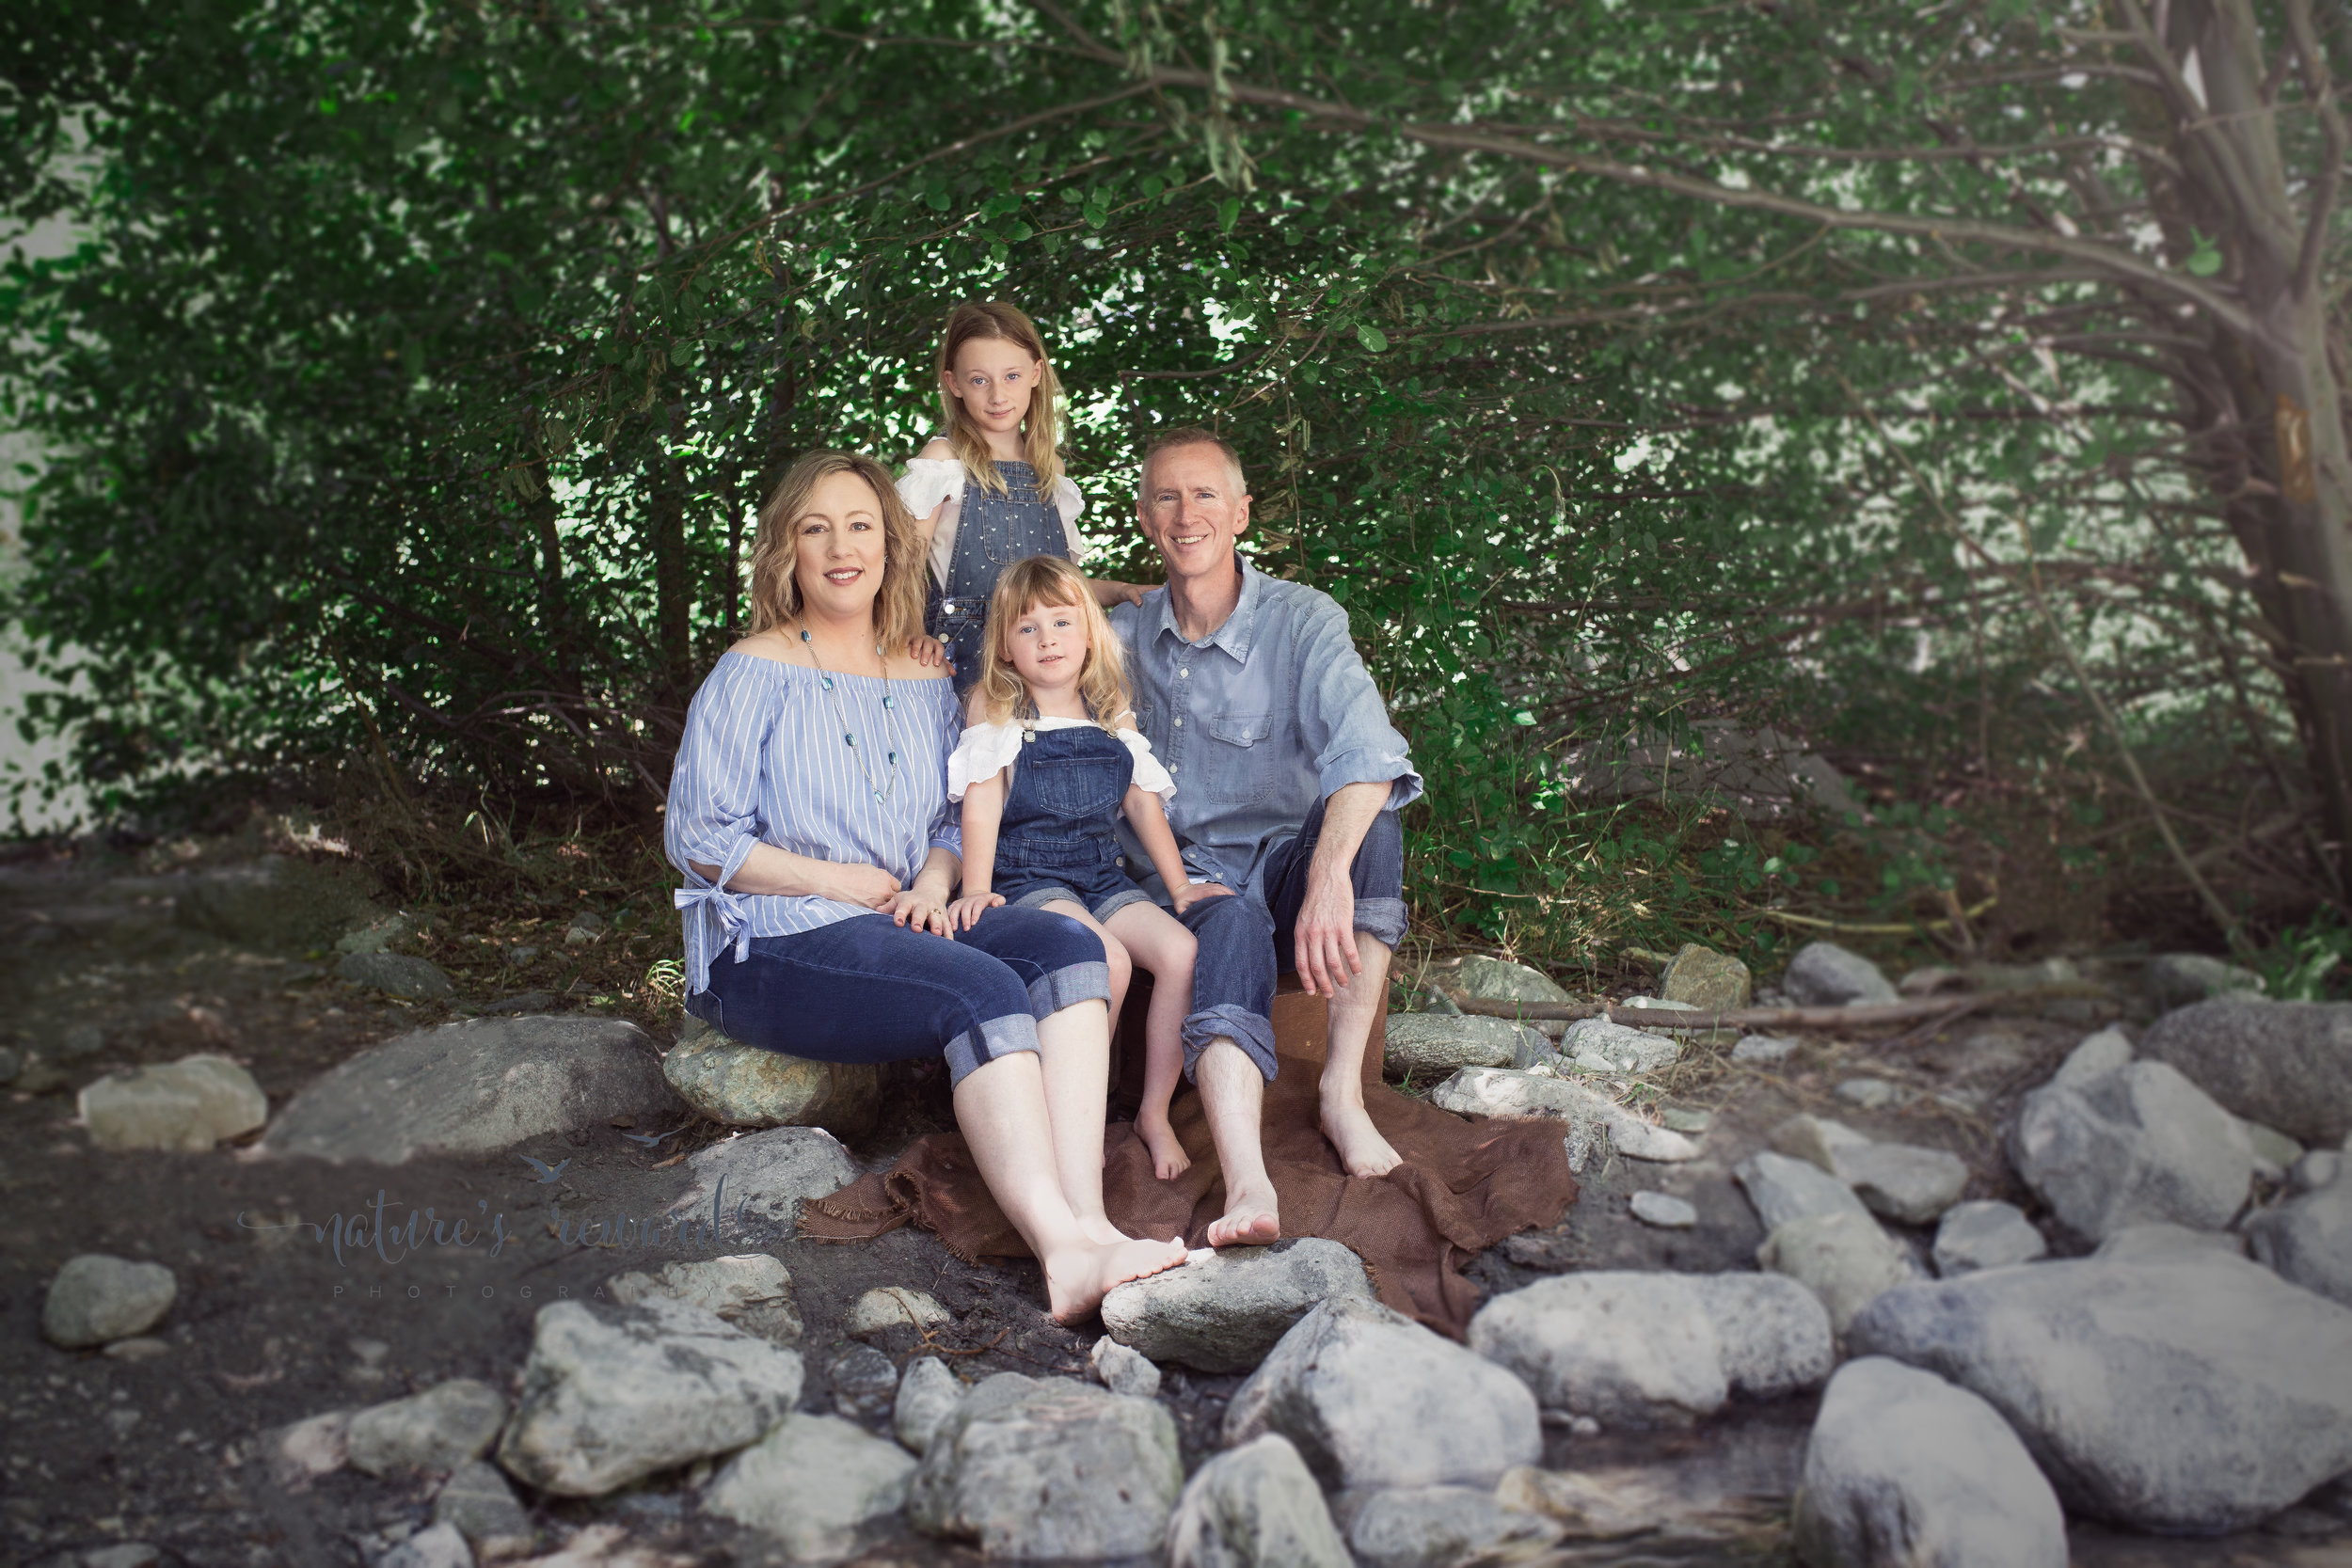 Lovely Family sits among the beauty of nature, smiling! Portrait by Nature's Reward Photography- a southern California photographer